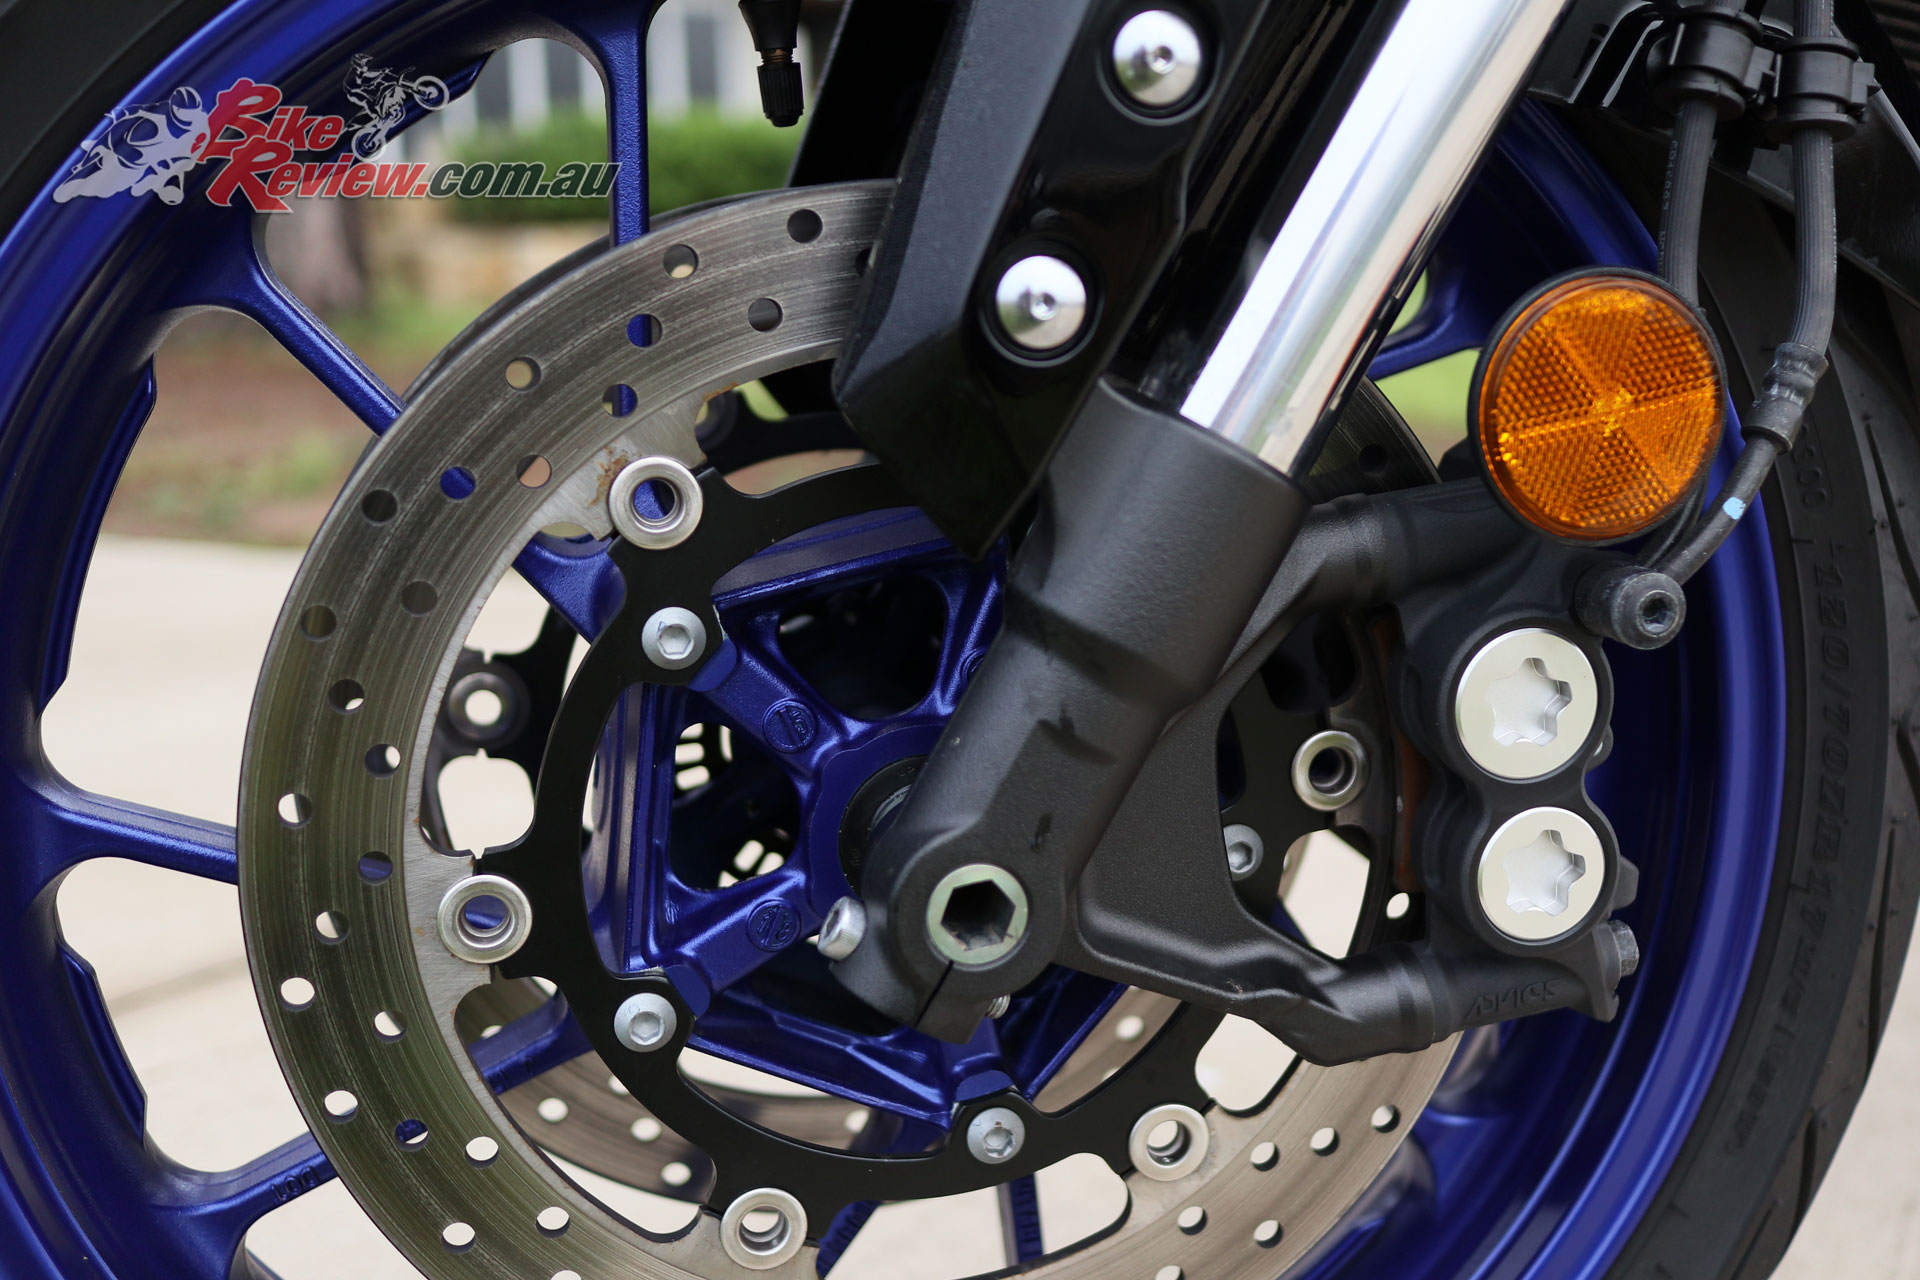 Dual 298mm rotors on the Tracer 900 GT are slowed by four-piston calipers